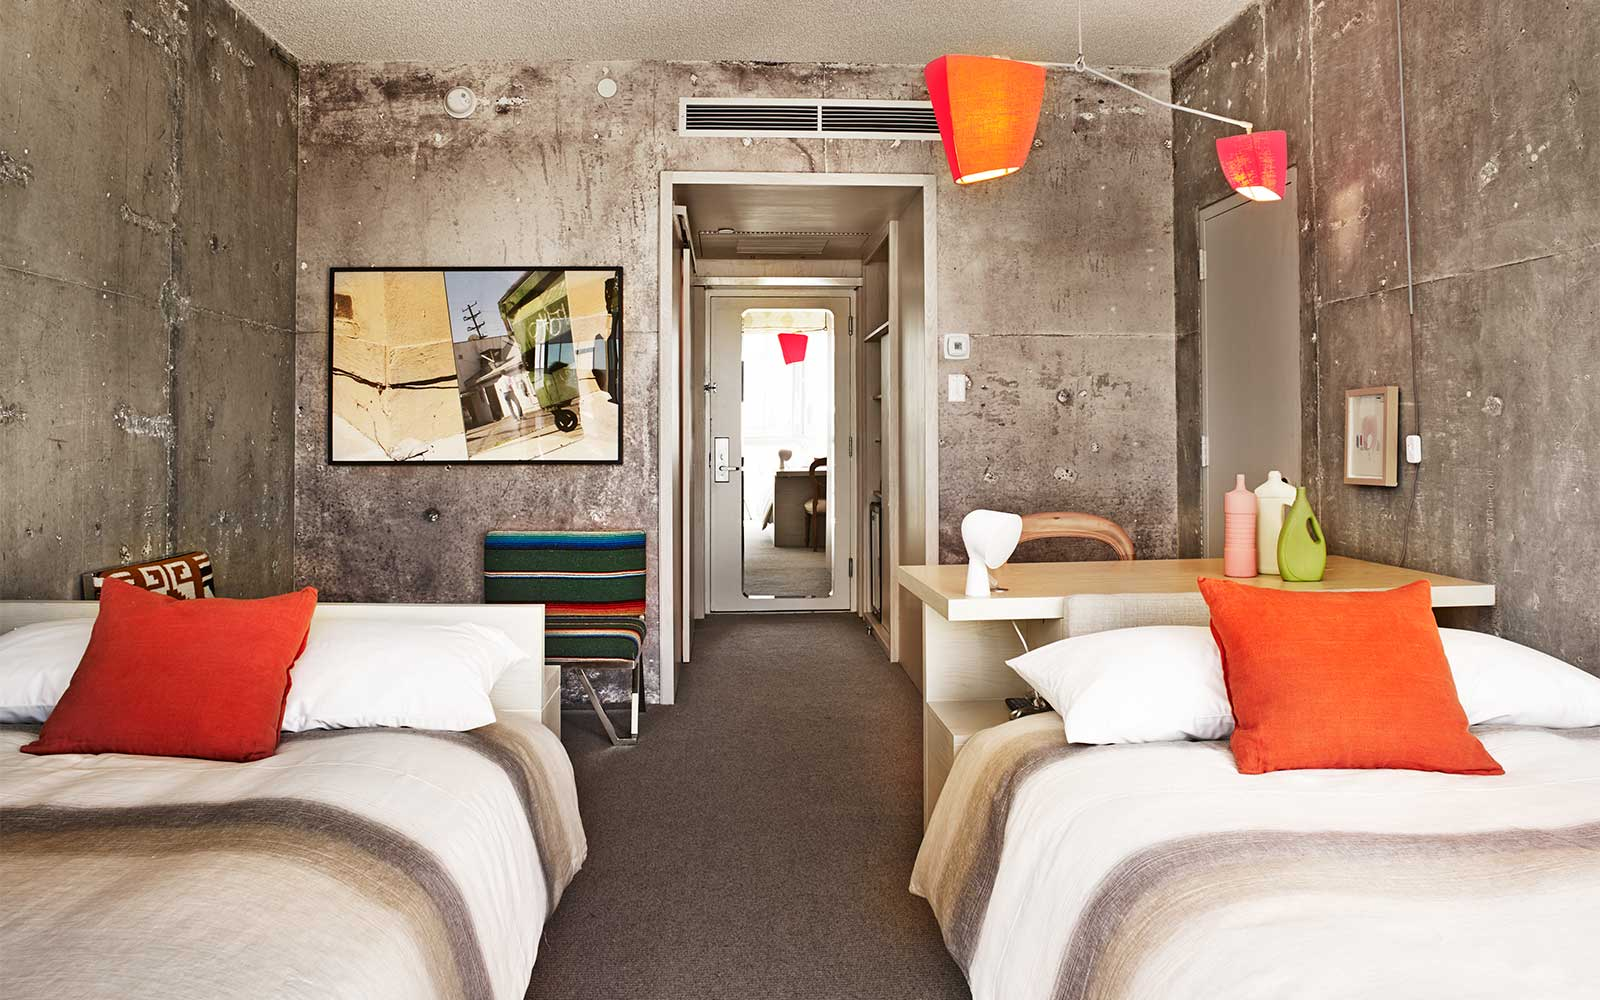 The Line Hotel - Room / Knibb Design (10)